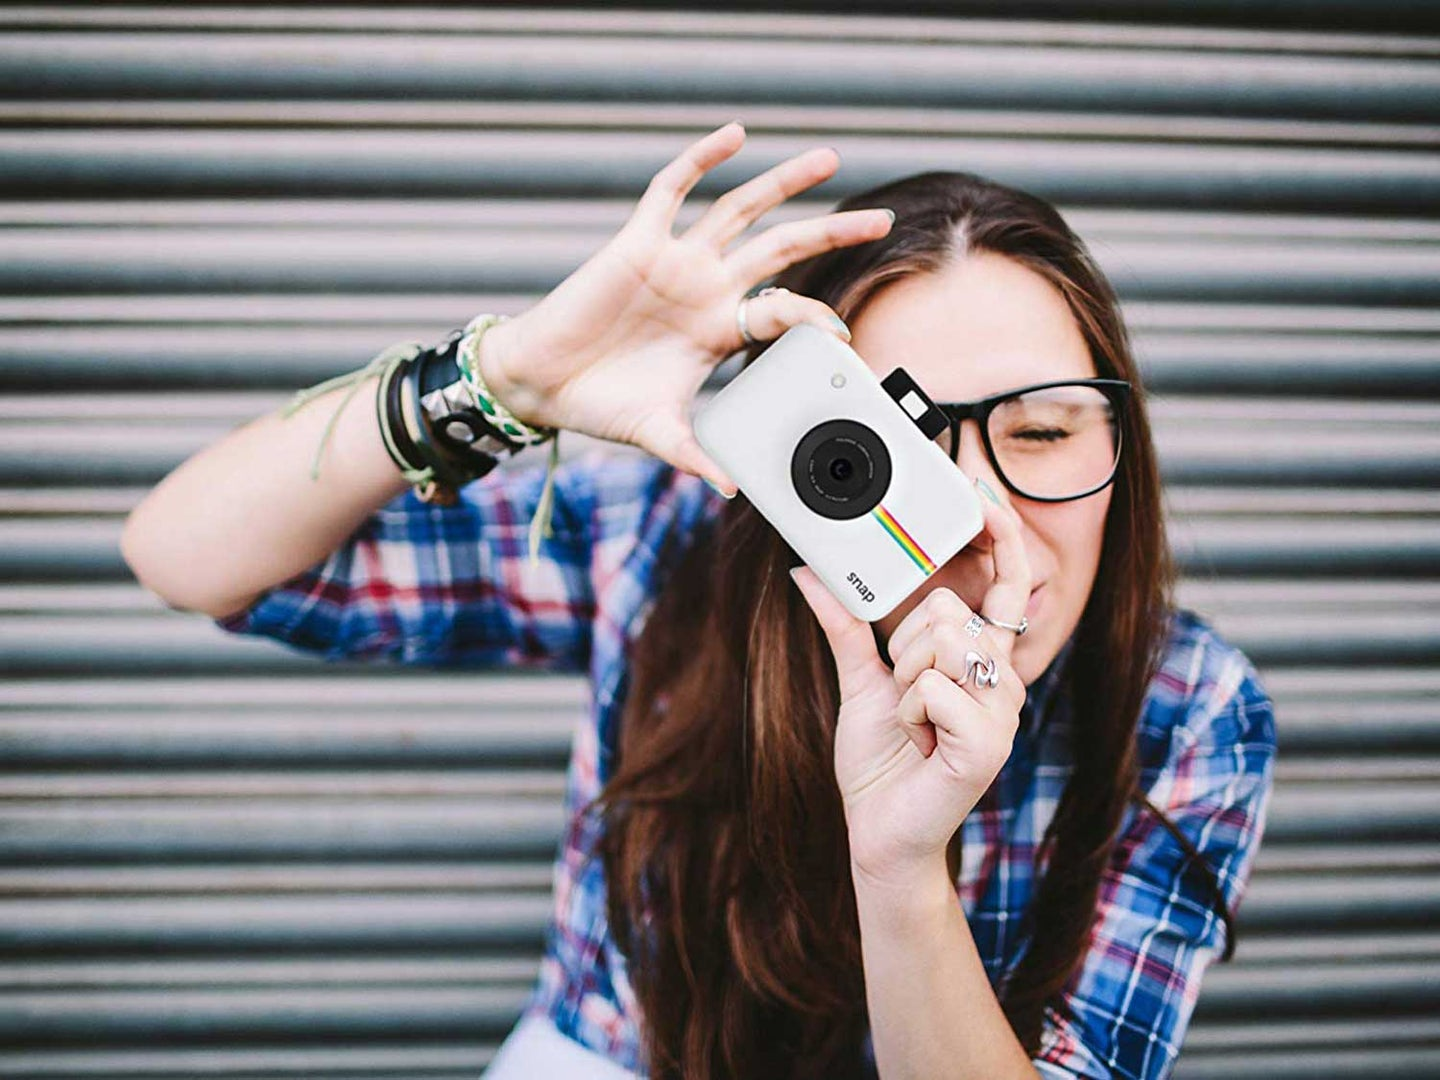 Taking picture with polaroid camera